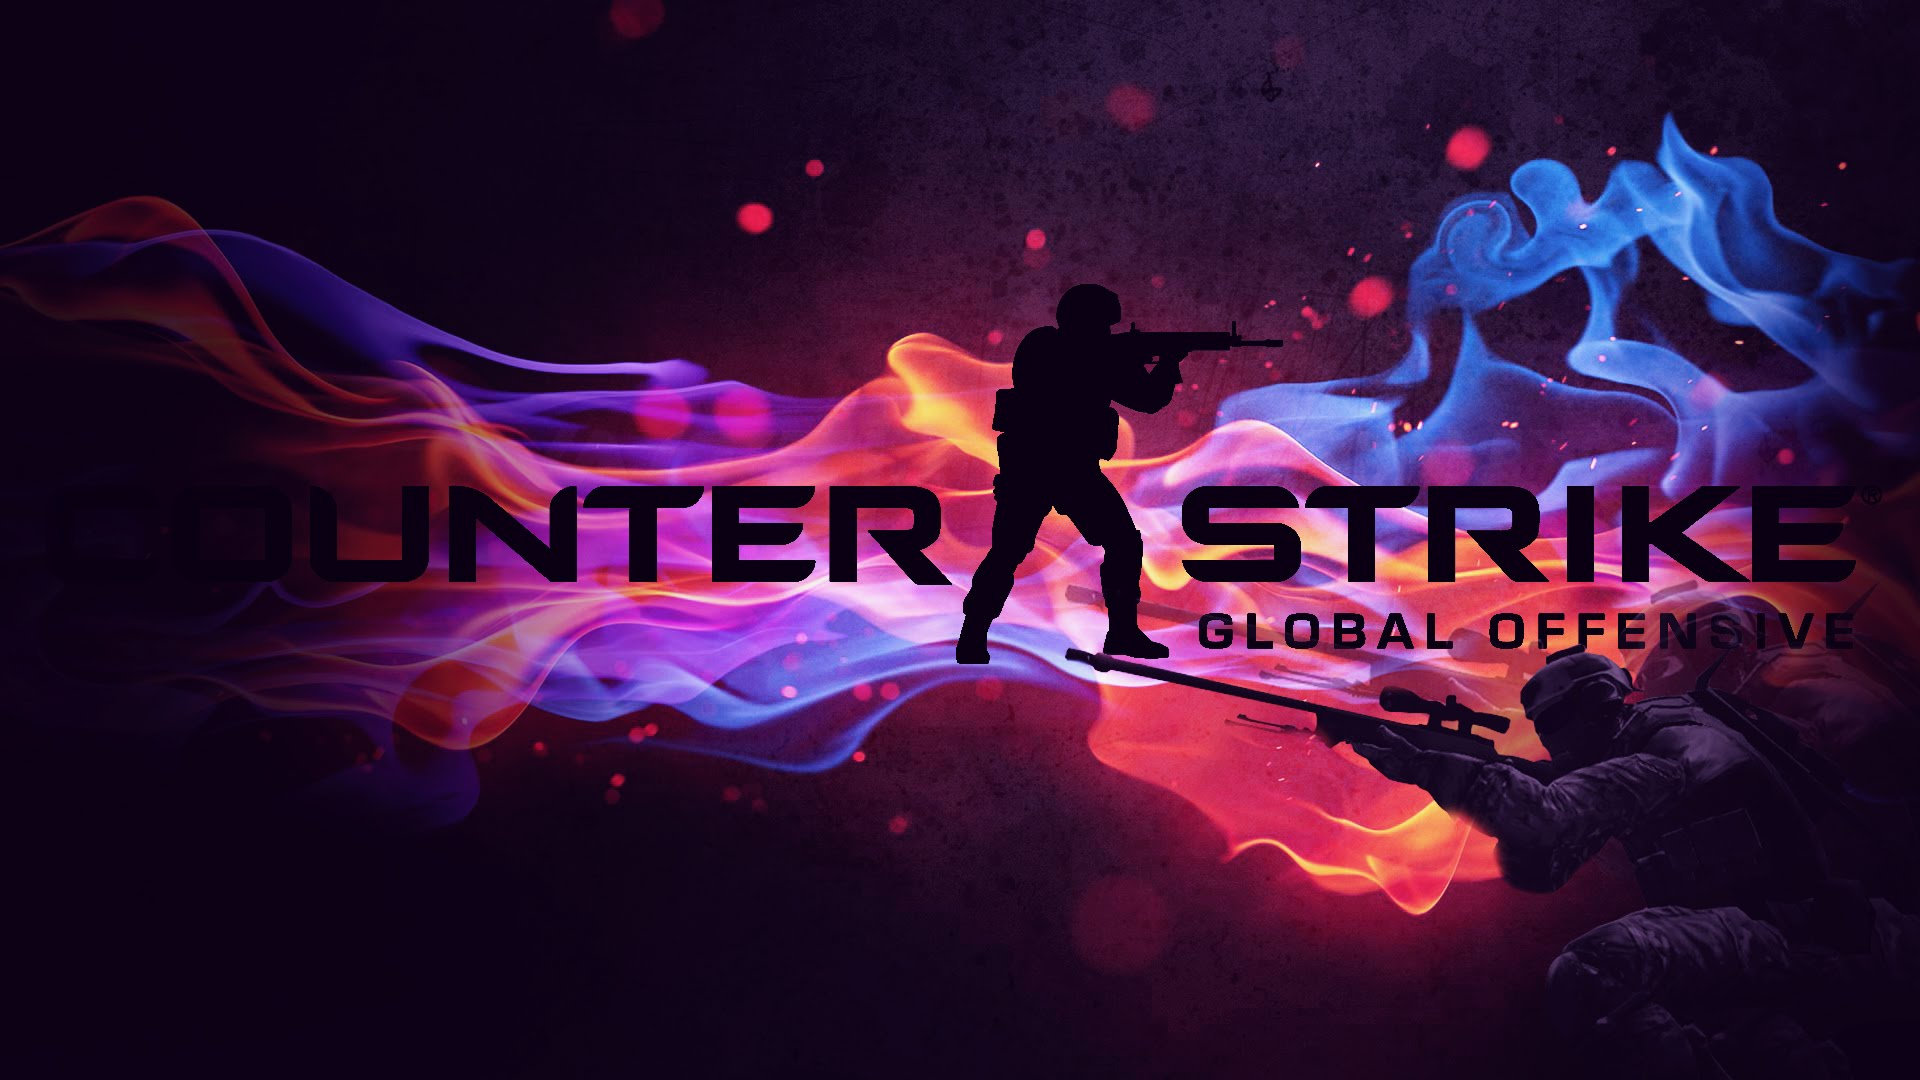 Cs Go 1080p Wallpaper 110 images in Collection Page 1 1920x1080